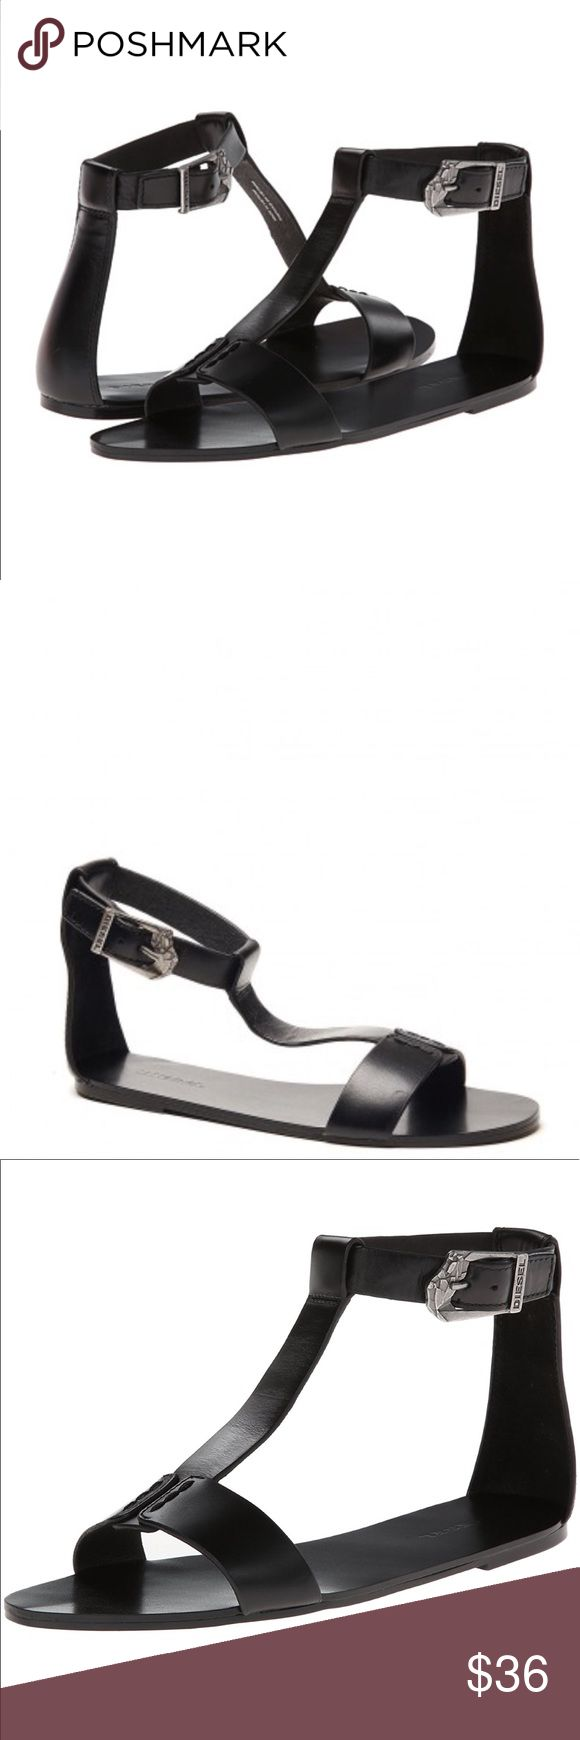 """DIESEL Walayla Kapp-Two T-Strap Sandals - 6 - New DIESEL Walayla Kapp-Two Black Leather T-Strap Sandals - Size 6 - New  Retail price $130.00 Heel Height: 1/2"""" Platform Height: 1/4"""" Closure: Buckle Diesel Shoes Sandals"""